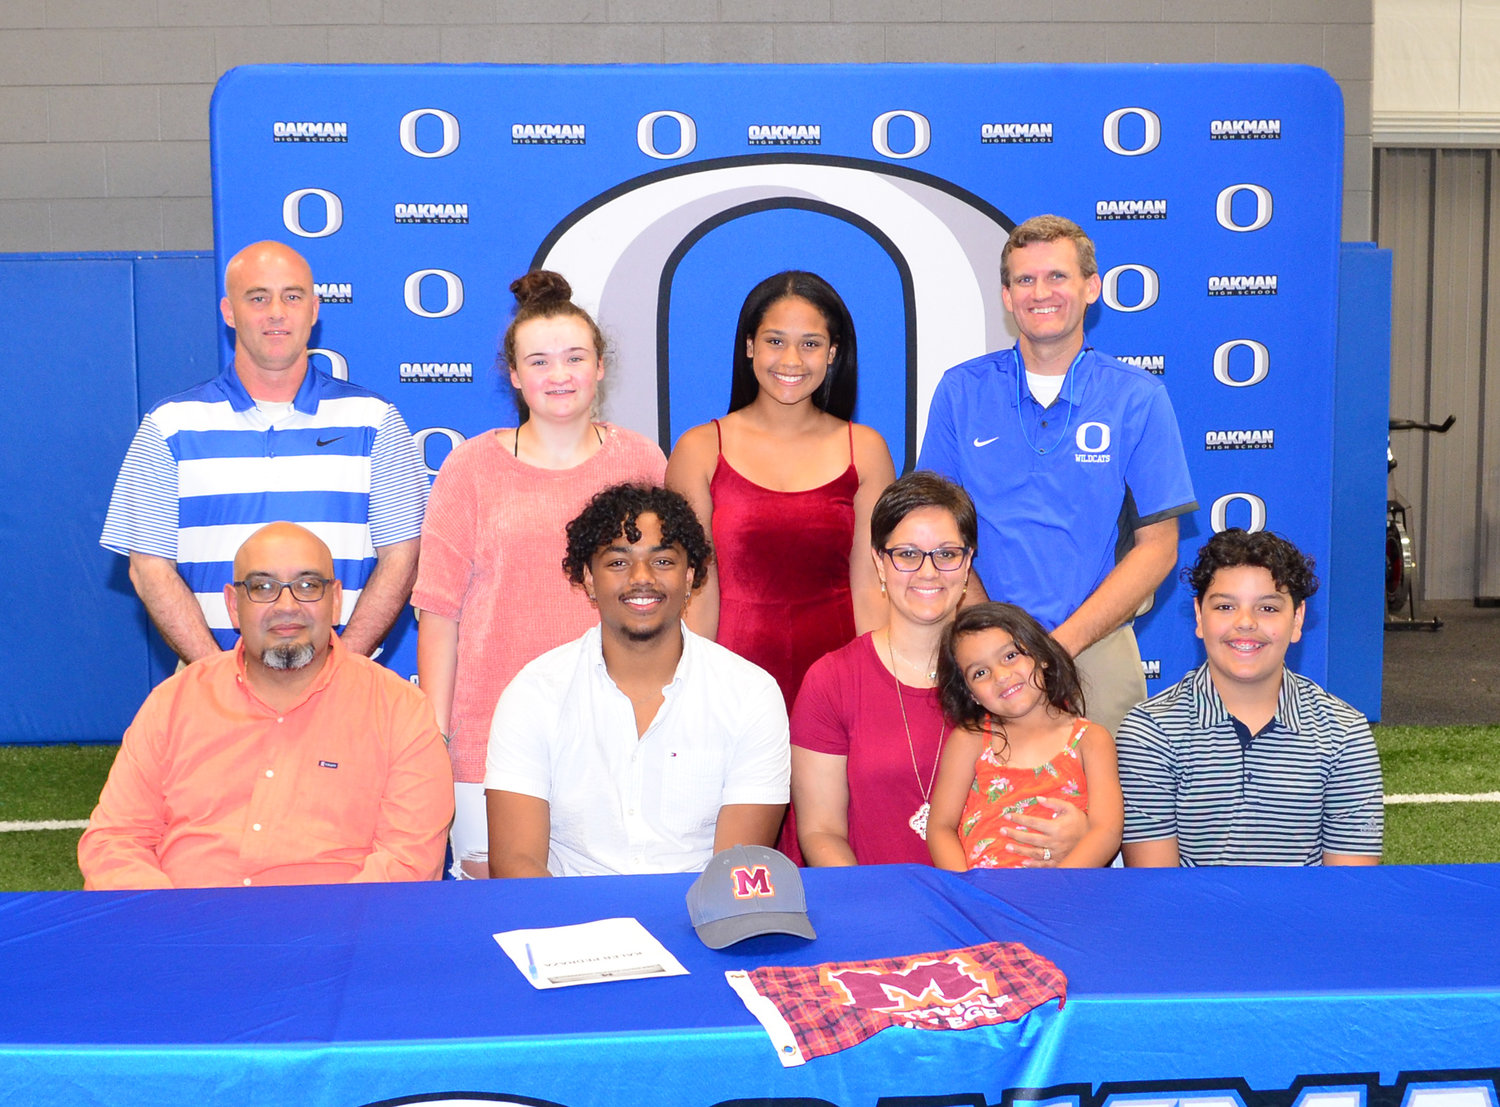 Oakman's Kaleb Pedraza signed a letter-of-intent with Maryville College on Thursday. He will play football for the Division III school located in Tennessee.